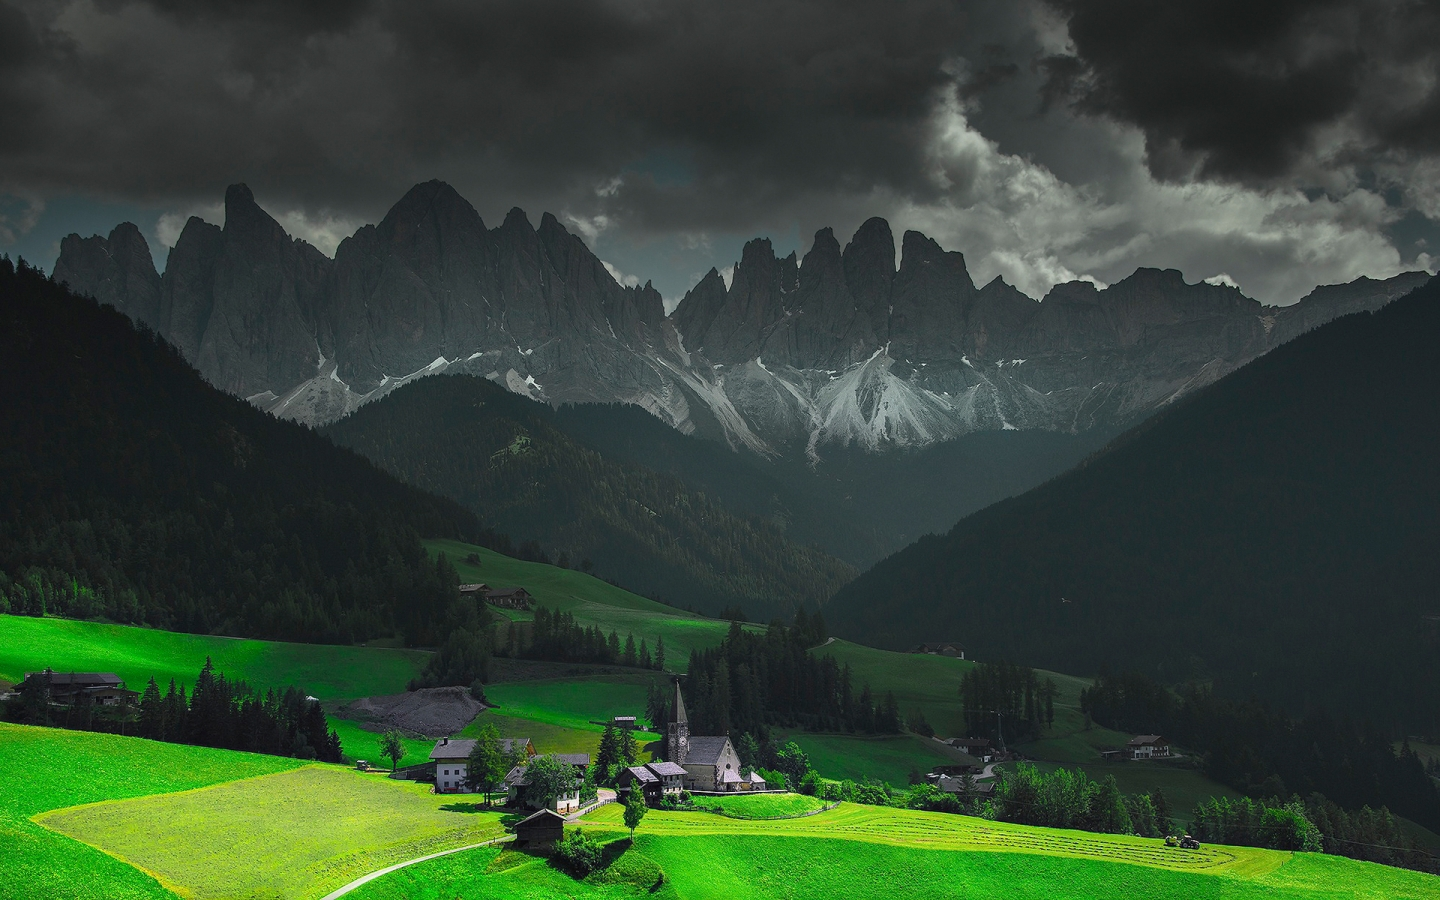 Funes Santa Maddalena Italy for 1440 x 900 widescreen resolution